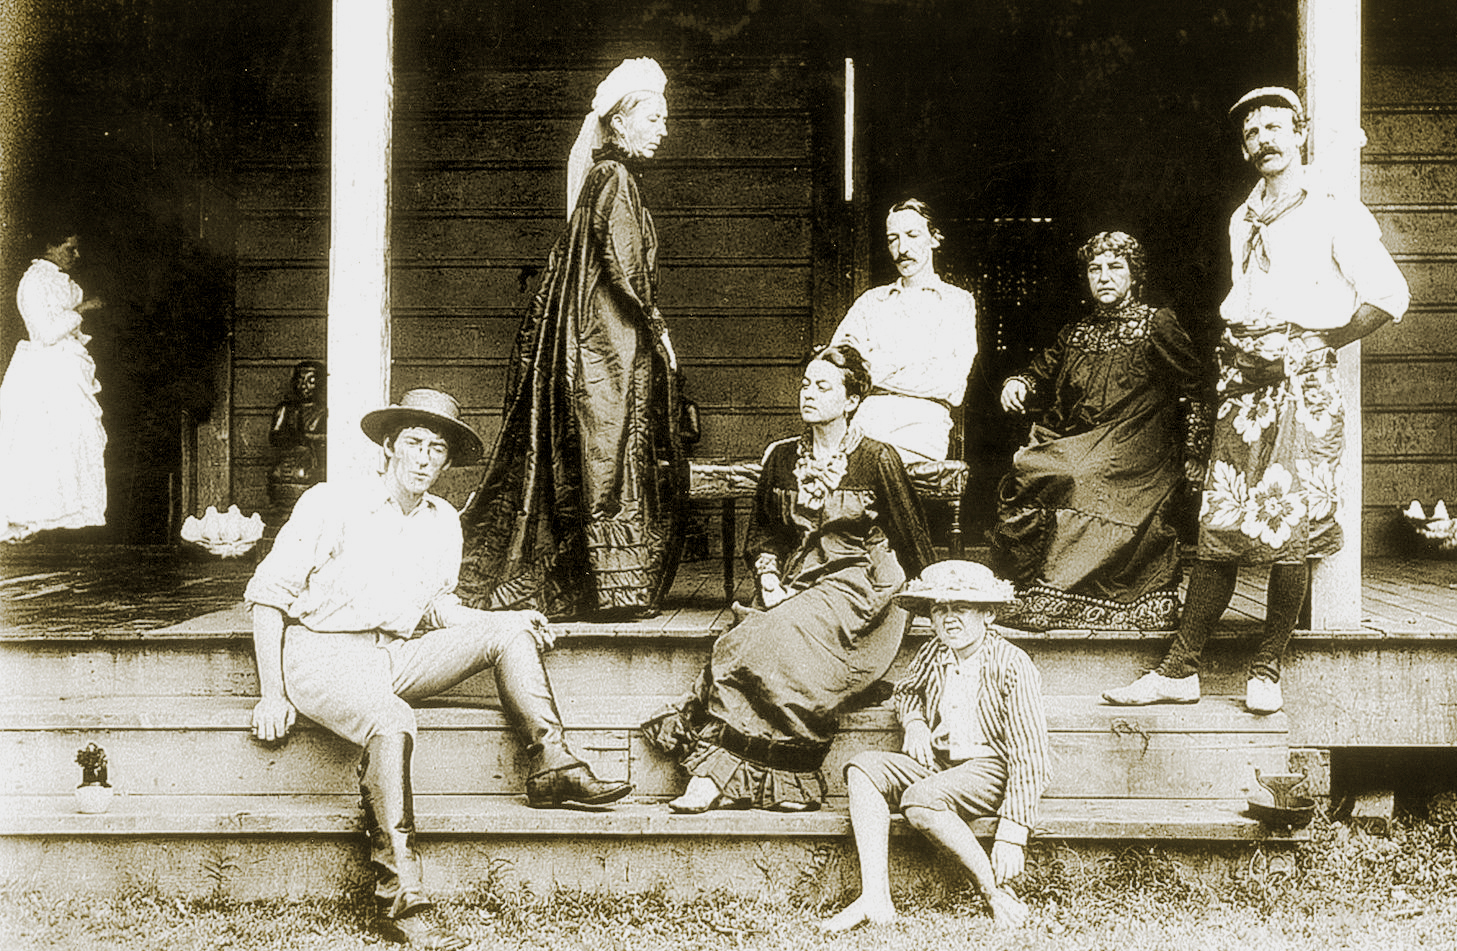 Robert Louis Stevenson  with his wife, Fanny,  and his mother and friends on the verandah of his house in Samoa